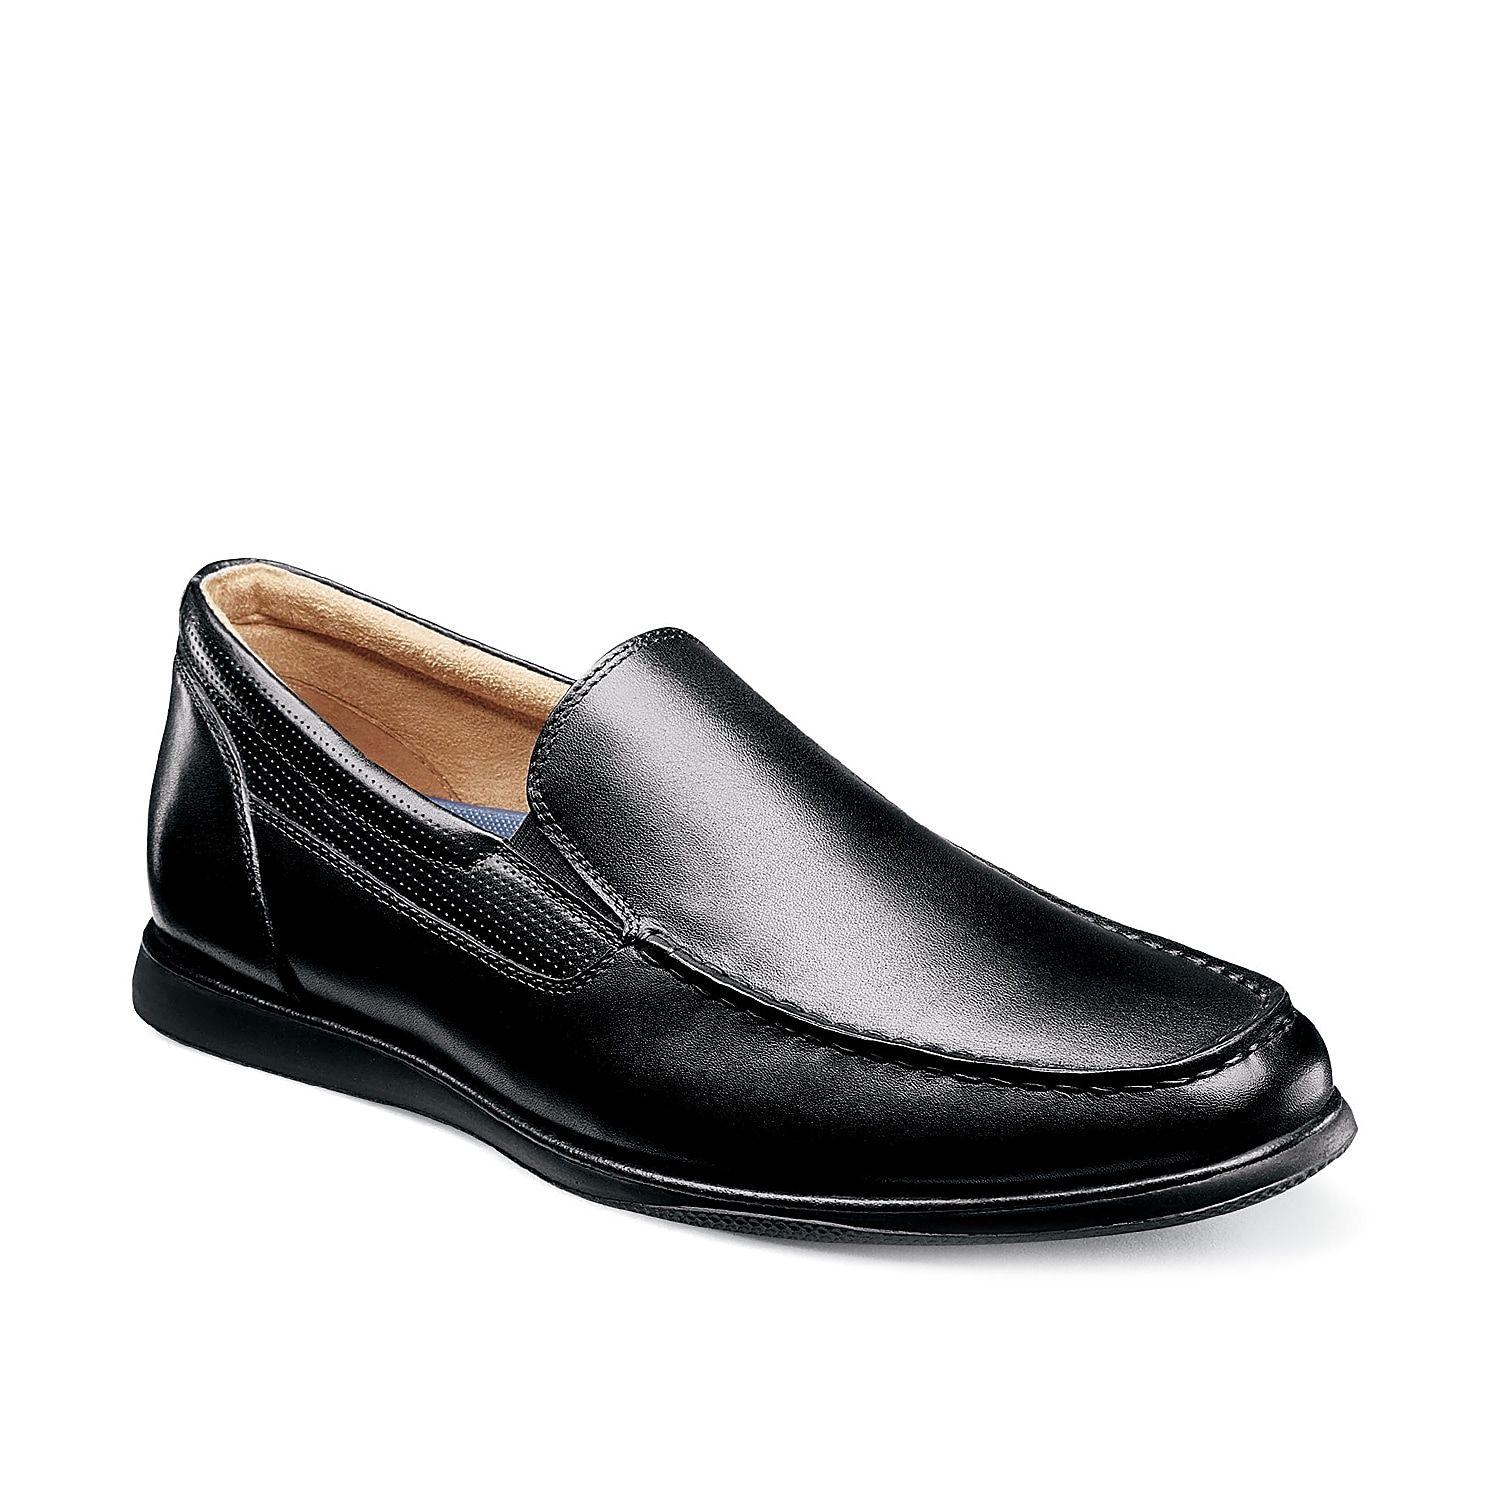 The Atlantic loafer from Florsheim is a versatile addition to your wardrobe. These leather slip-ons feature modern perforated accents at the topline and are finished with a molded midsole for extra support.